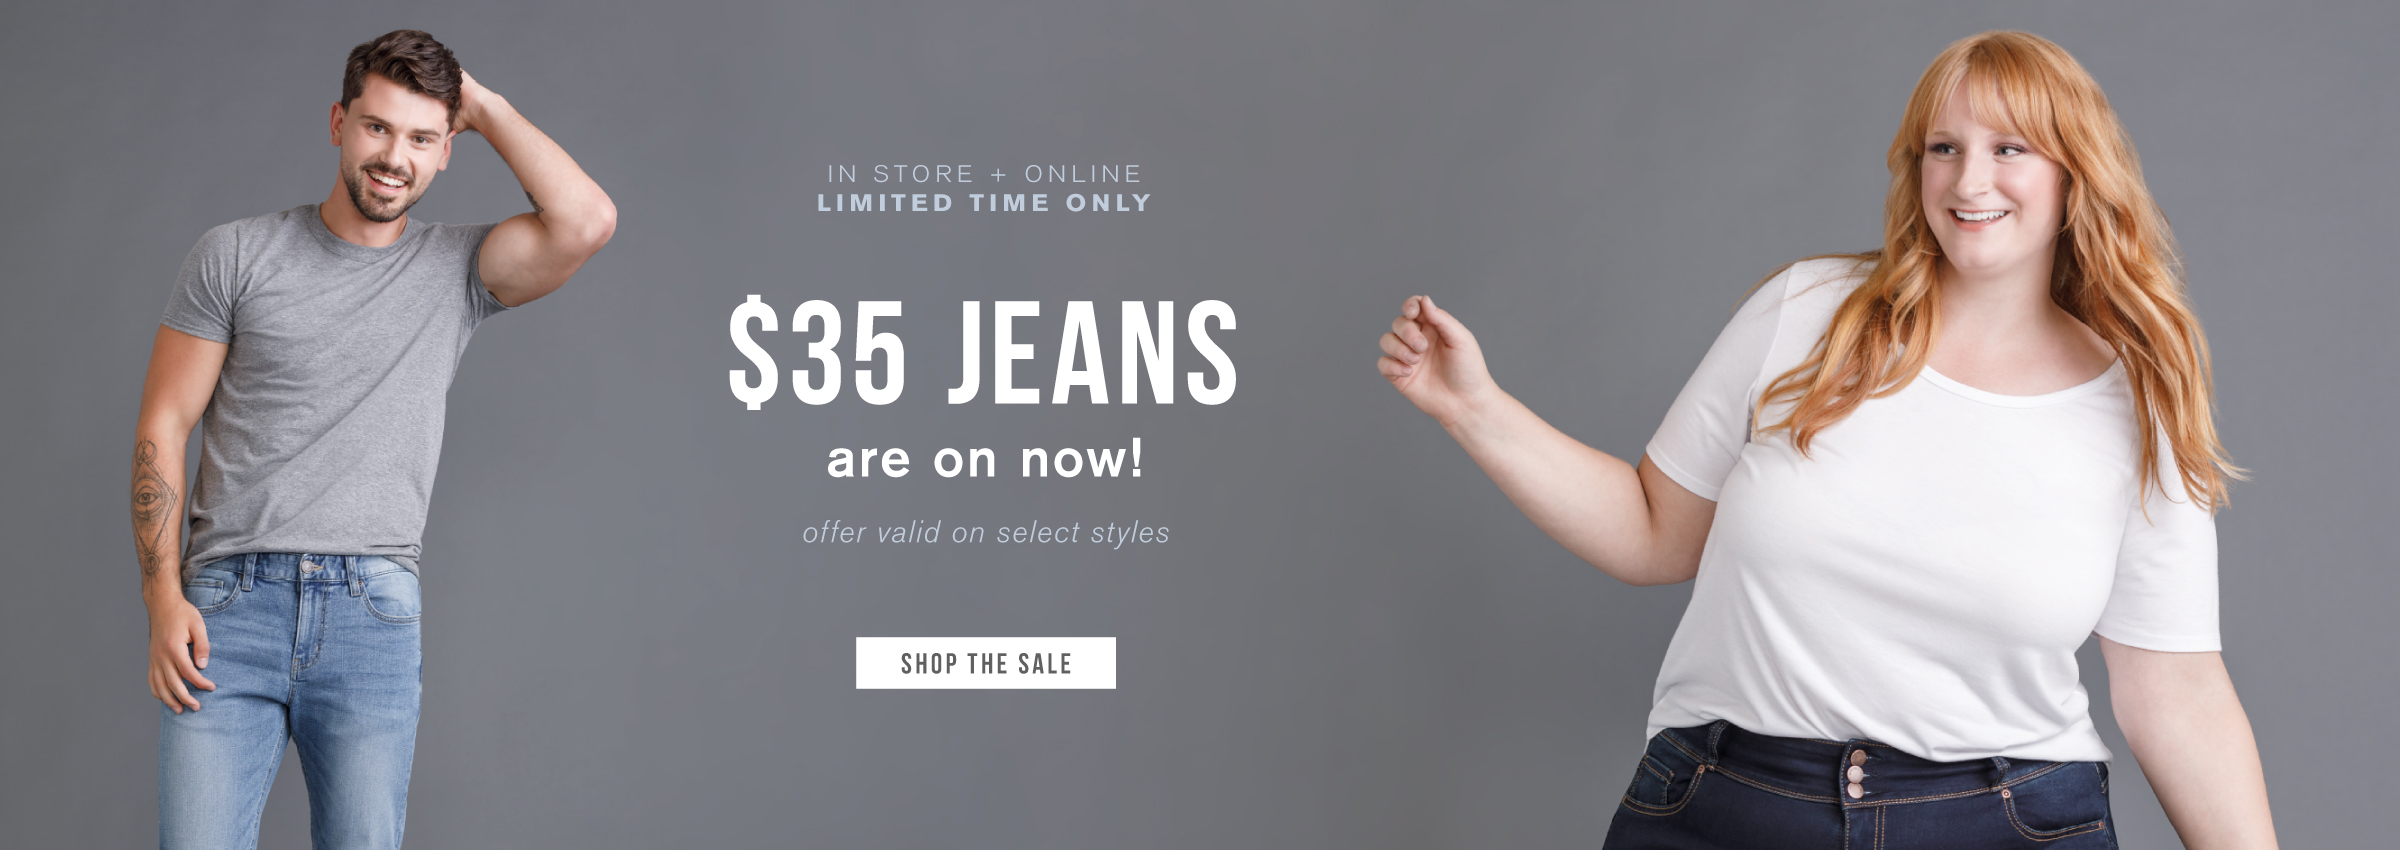 In store + online. Limited time only. $35 jeans are on now! Offer valid on select styles. Shop the sale.